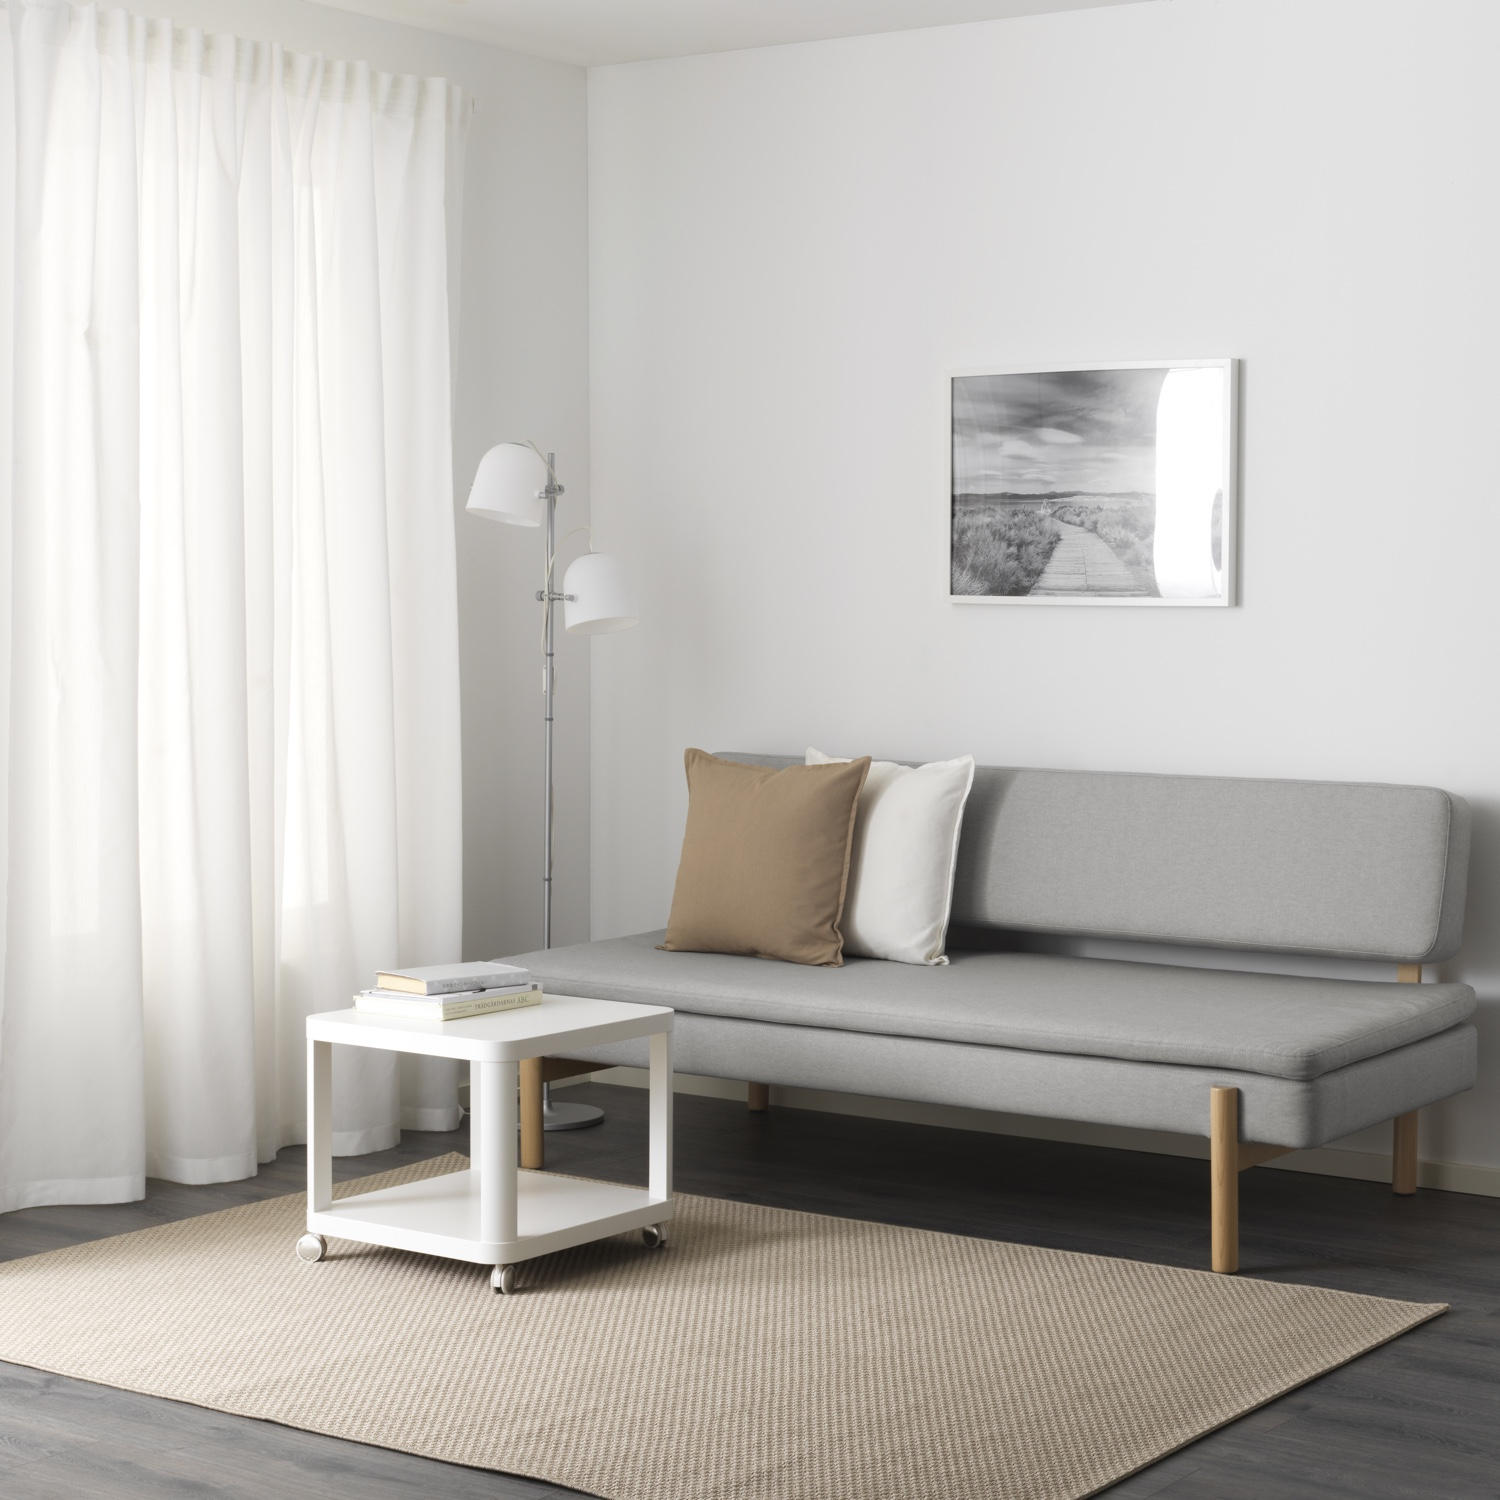 Ypperlig Ikea Sofa 10 Standouts From The Ikea X Hay Ypperlig Collection